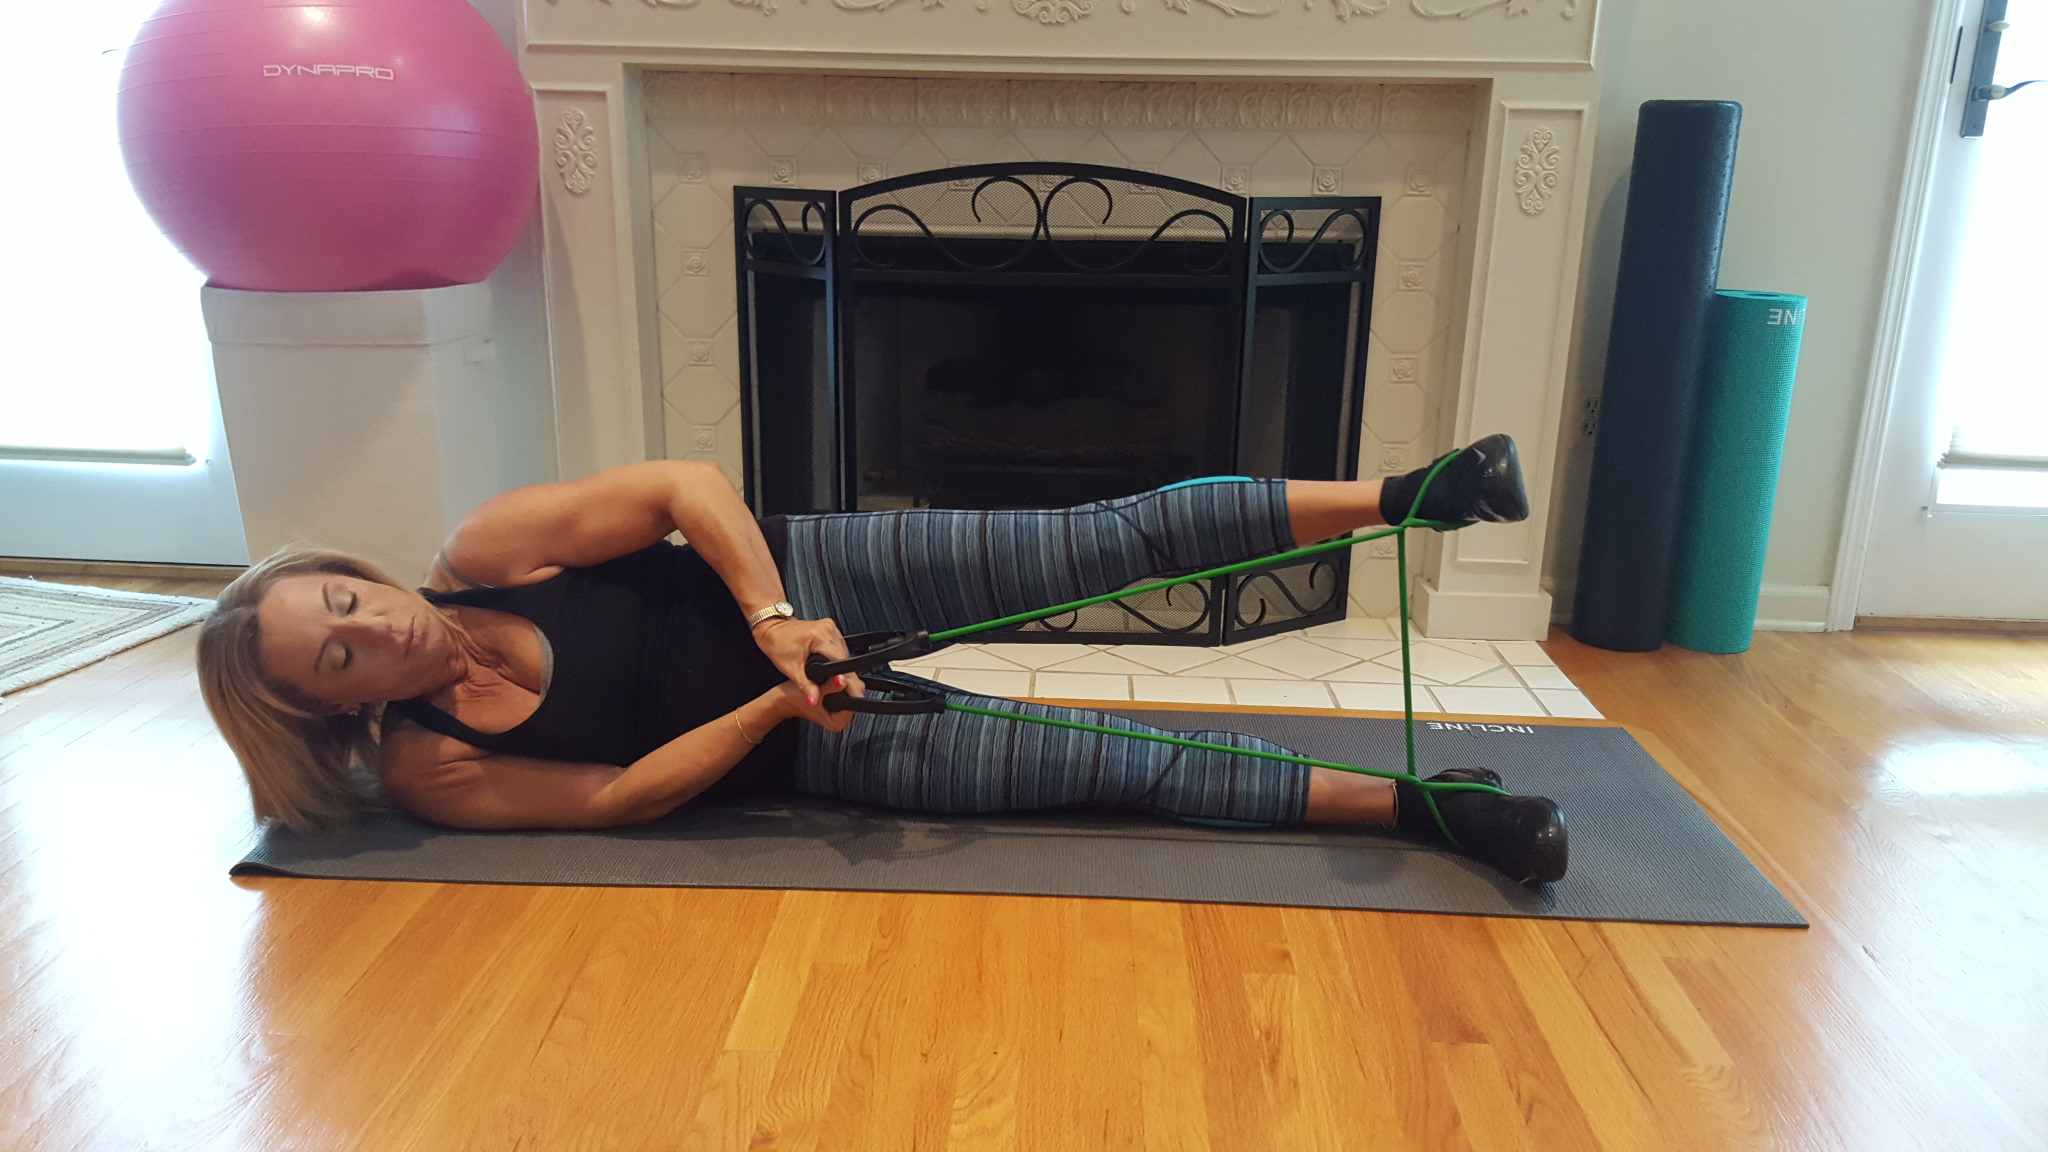 DYNAPRO resistance band - followPhyllis